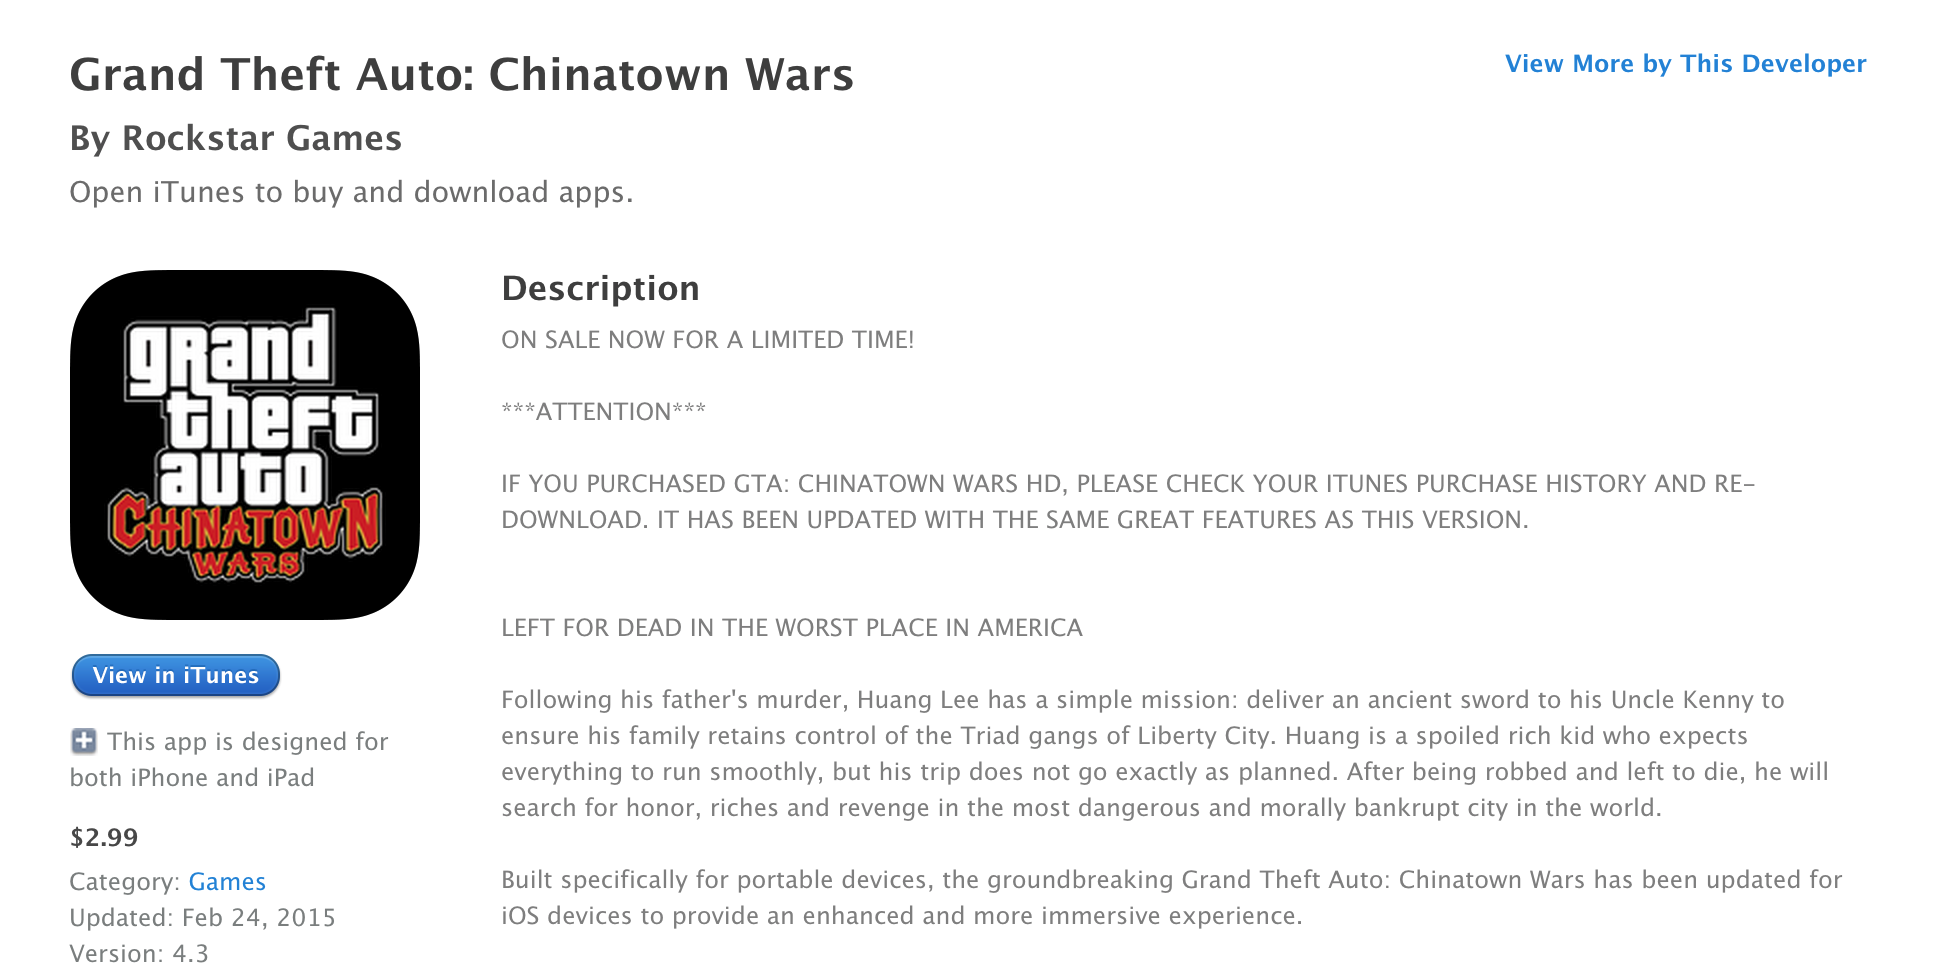 gta chinatown wars free download for ios